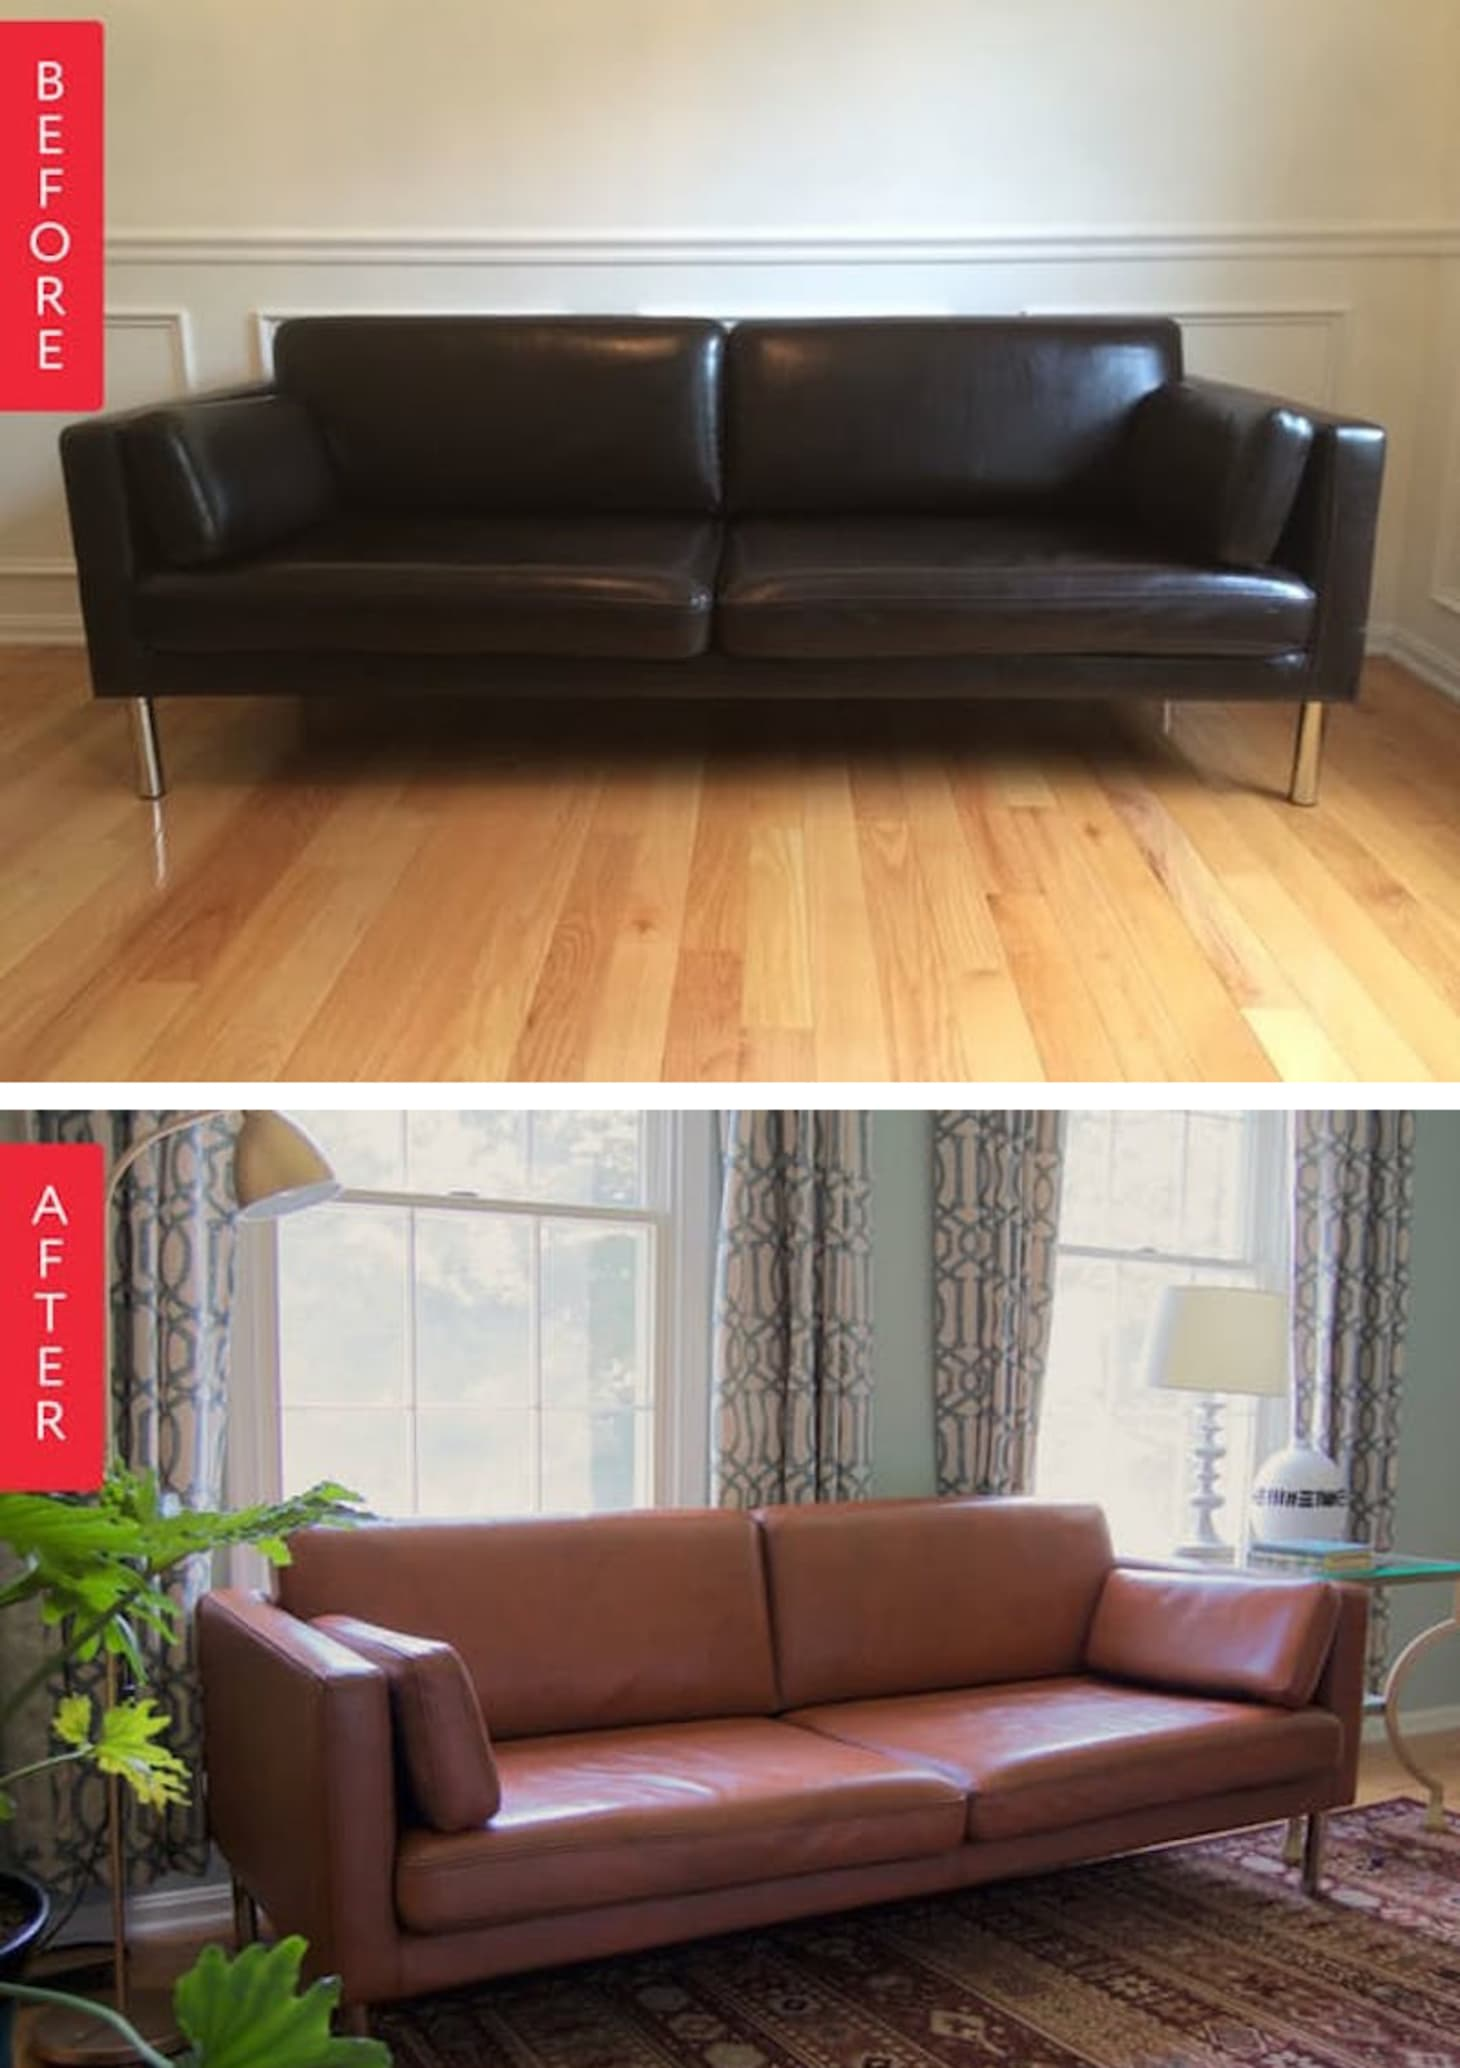 Incredible How To Make Your Old Ugly Sofa Look New Again Apartment Unemploymentrelief Wooden Chair Designs For Living Room Unemploymentrelieforg